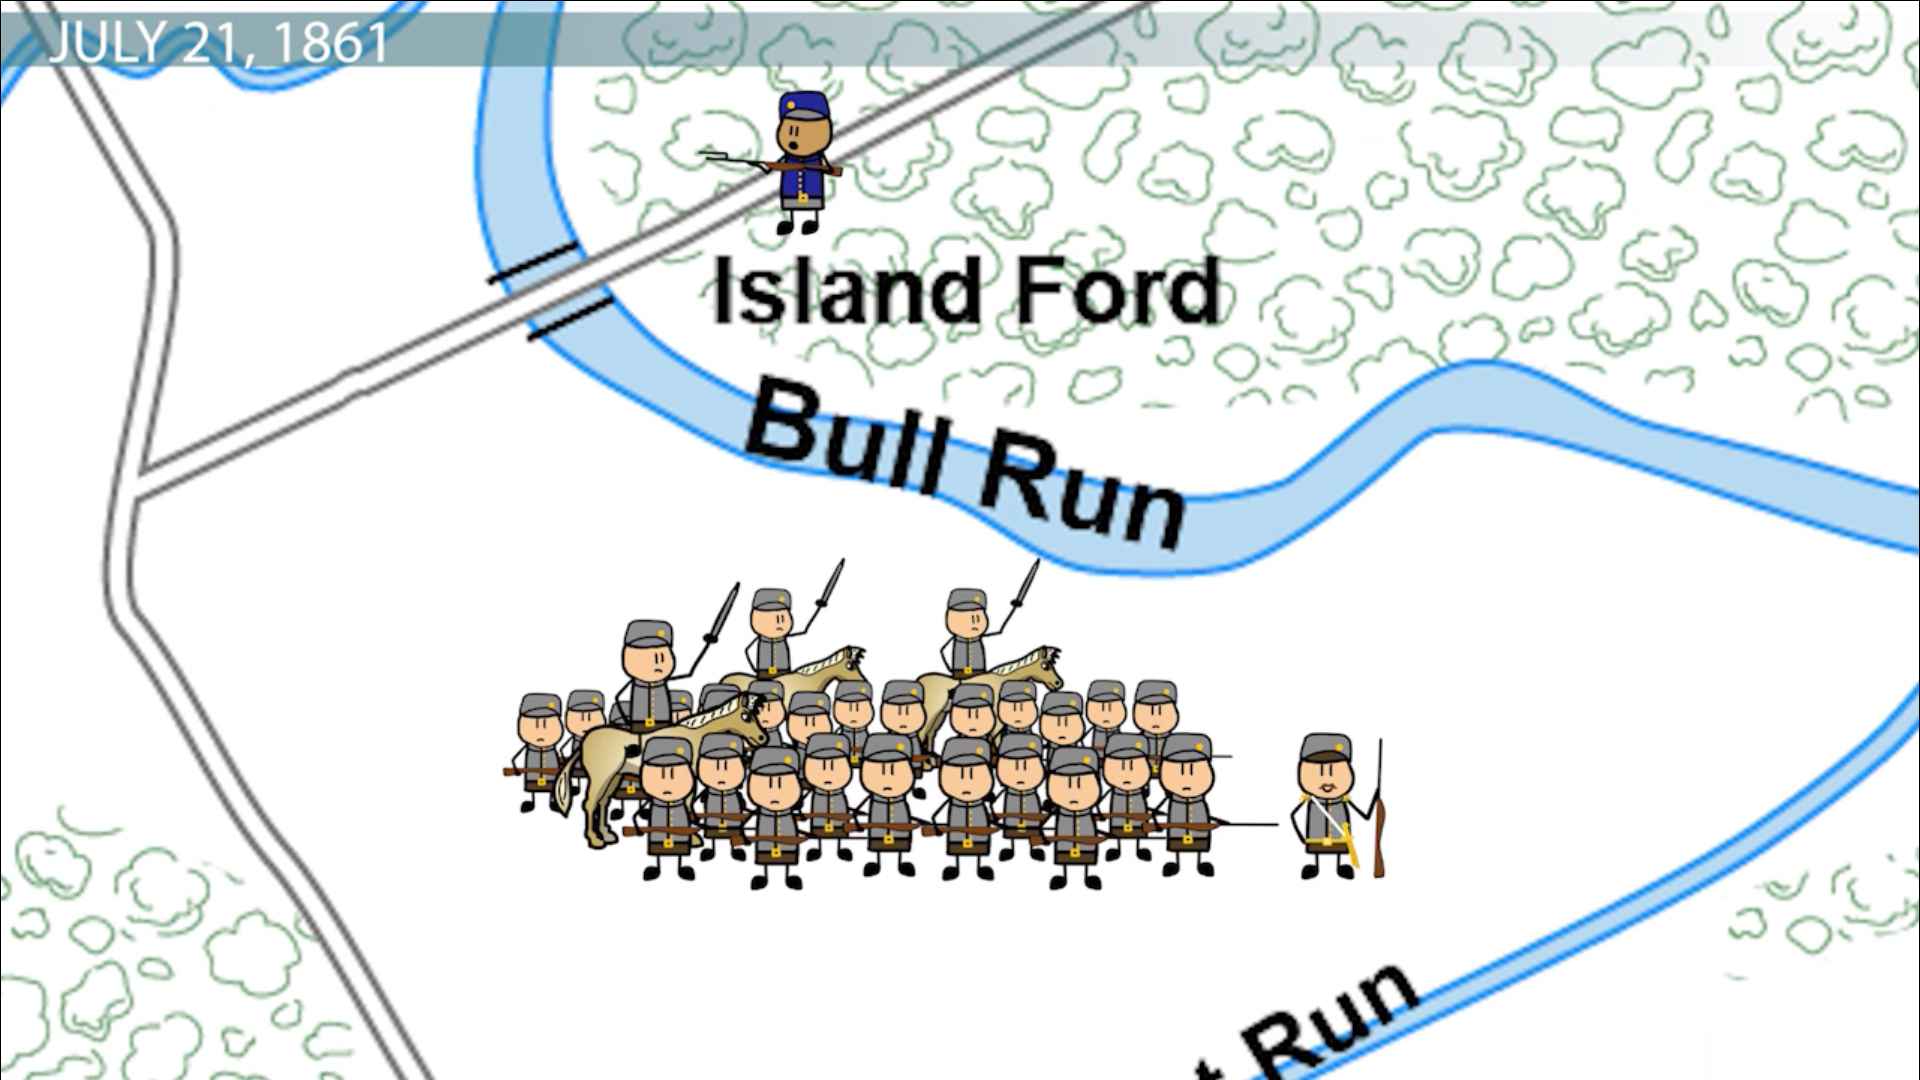 The First Battle of Bull Run: Summary, Significance ... - photo#40